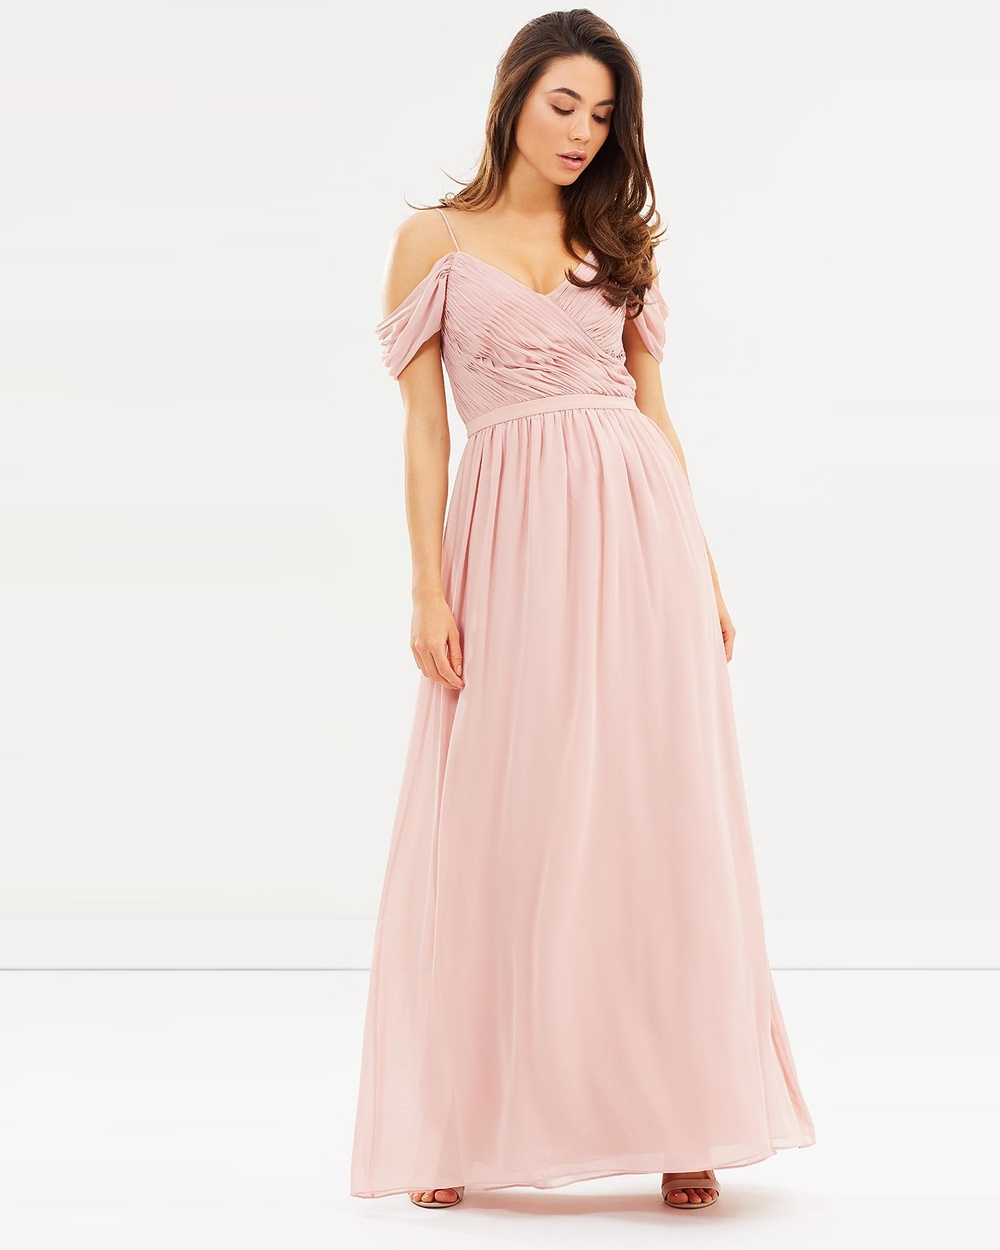 Esther Camellia Dress Bridesmaid Dresses Dark Blush Camellia Dress